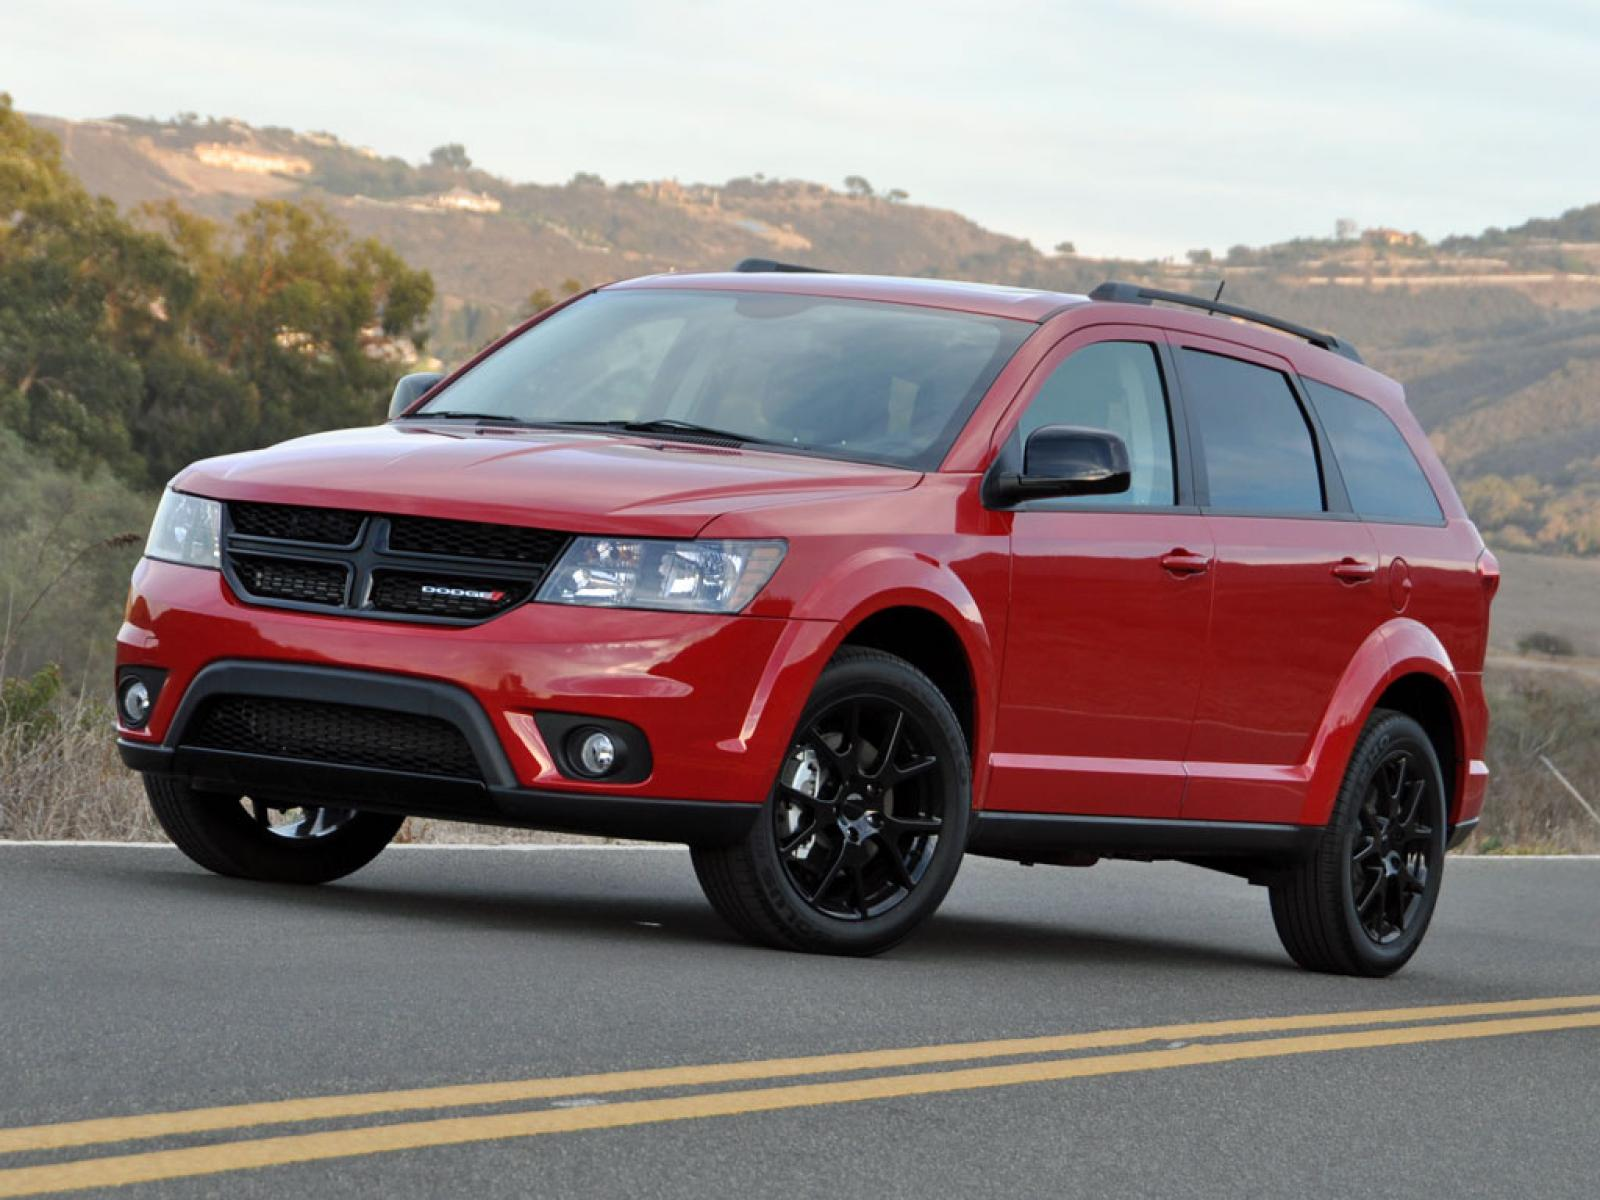 2014 dodge journey 3 2014 dodge journey information and photos zombiedrive 2016 dodge journey fuse box diagram at reclaimingppi.co